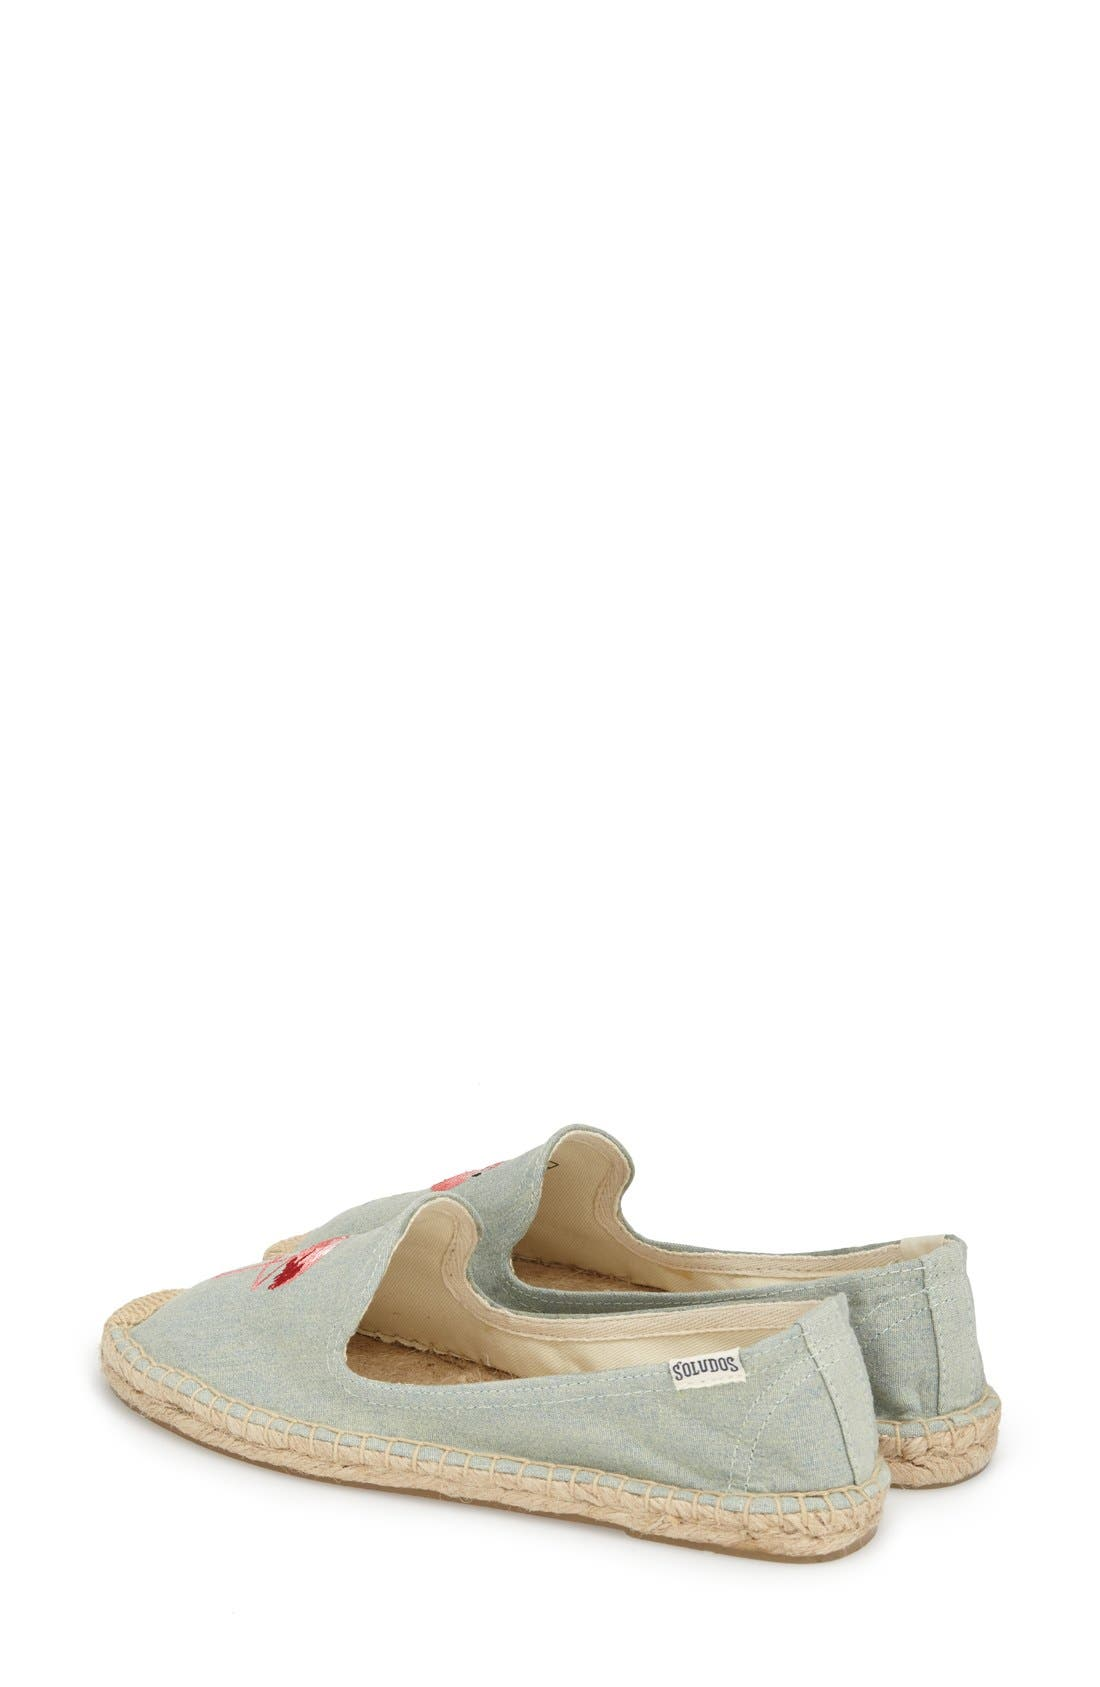 SOLUDOS, Espadrille Slip-On, Alternate thumbnail 5, color, FLAMINGO CHAMBRAY